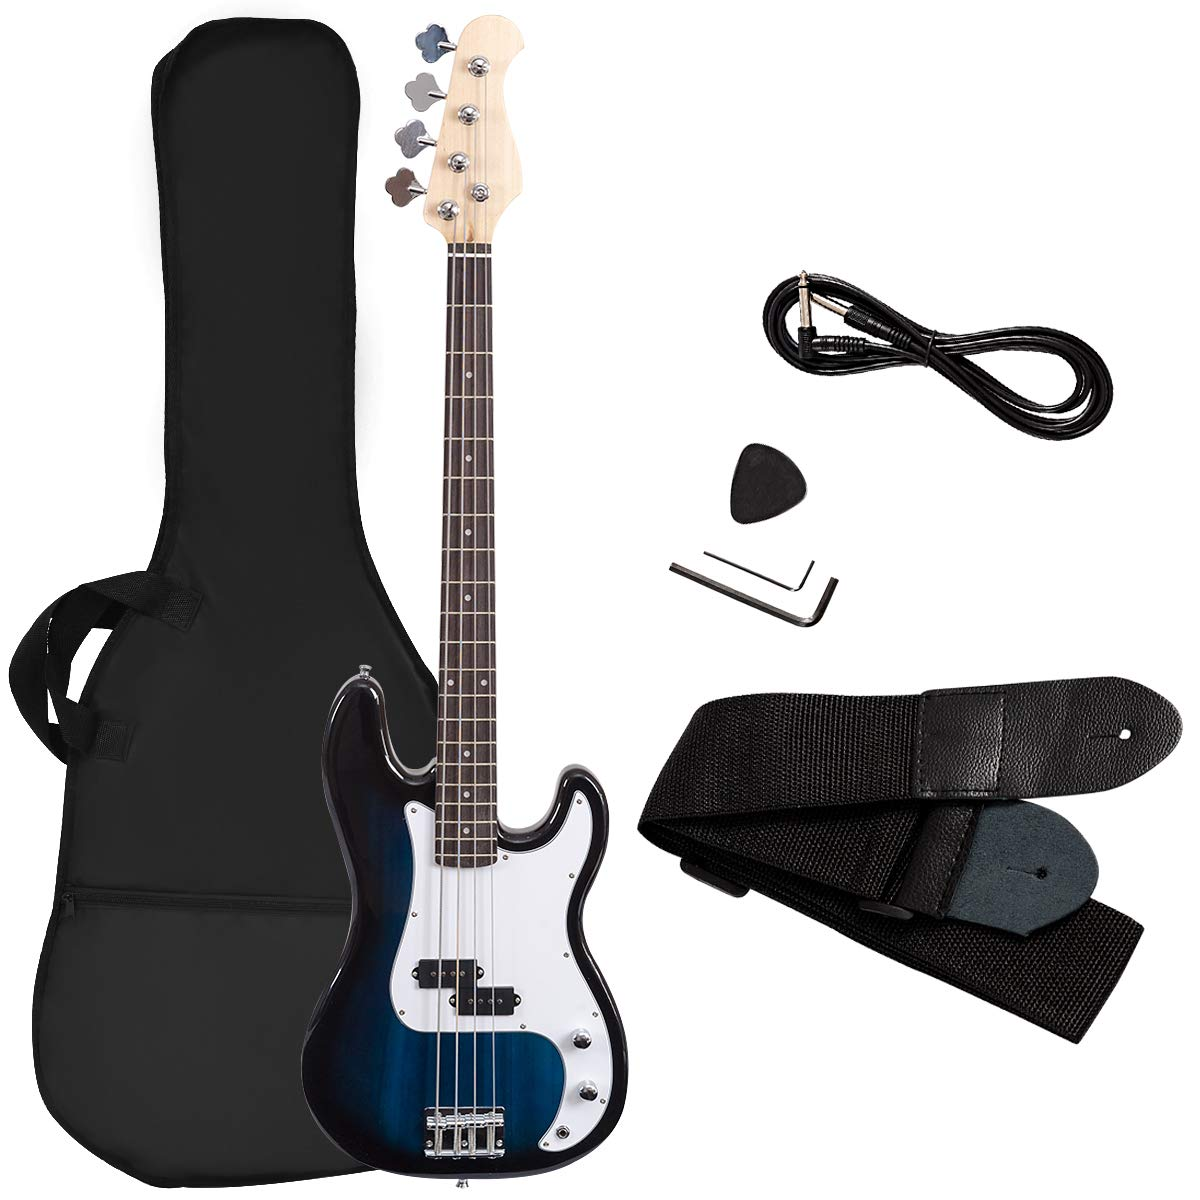 Goplus Electric Bass Guitar Full Size 4 String with Strap Guitar Bag Amp Cord (Blue Bass 4 Straps) by Goplus